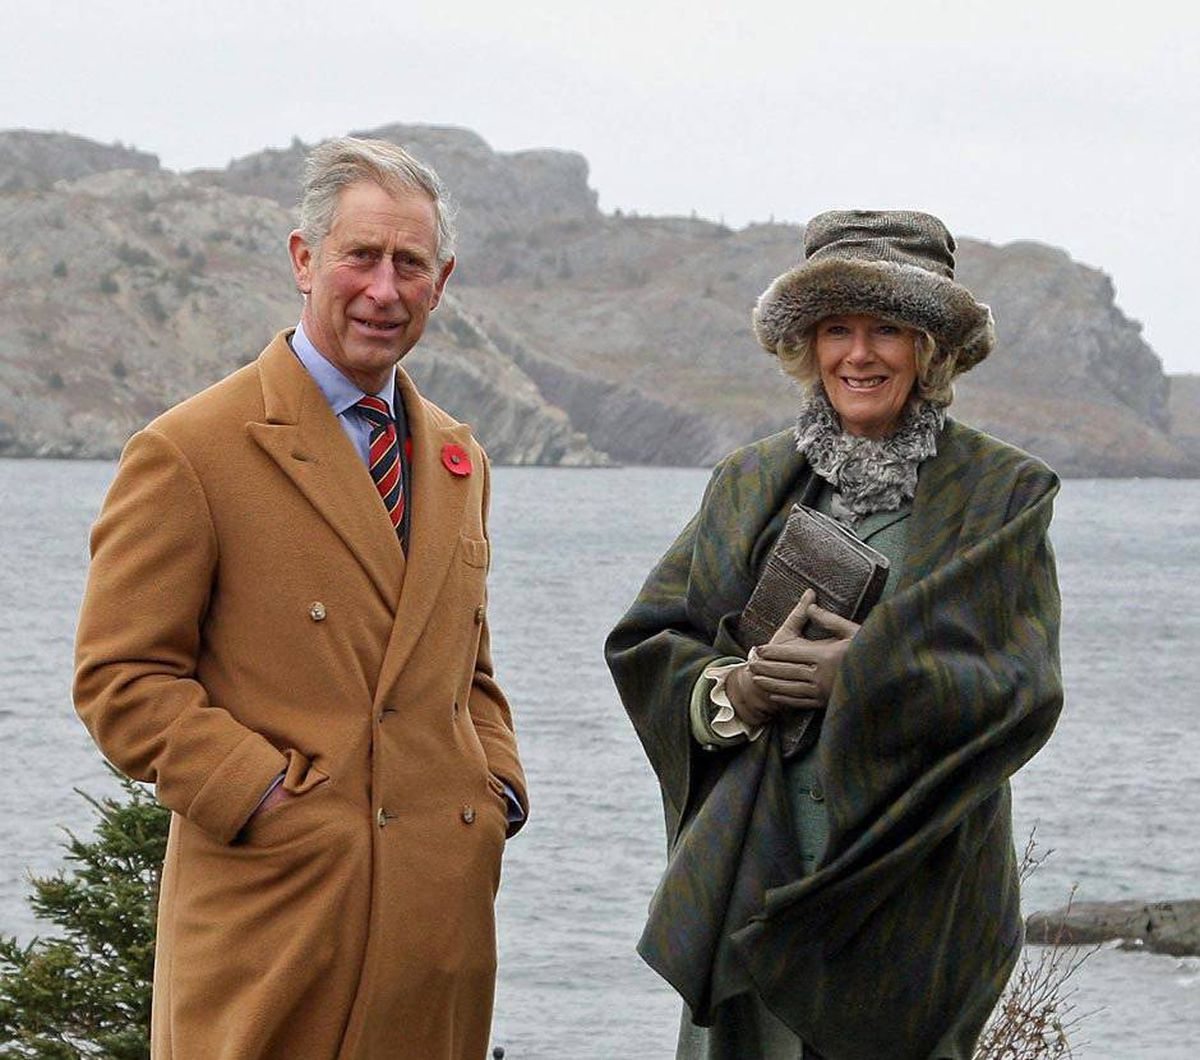 Prince Charles and Camilla, Duchess of Cornwall, in Brigus, Nfld., Nov. 3, 2009.